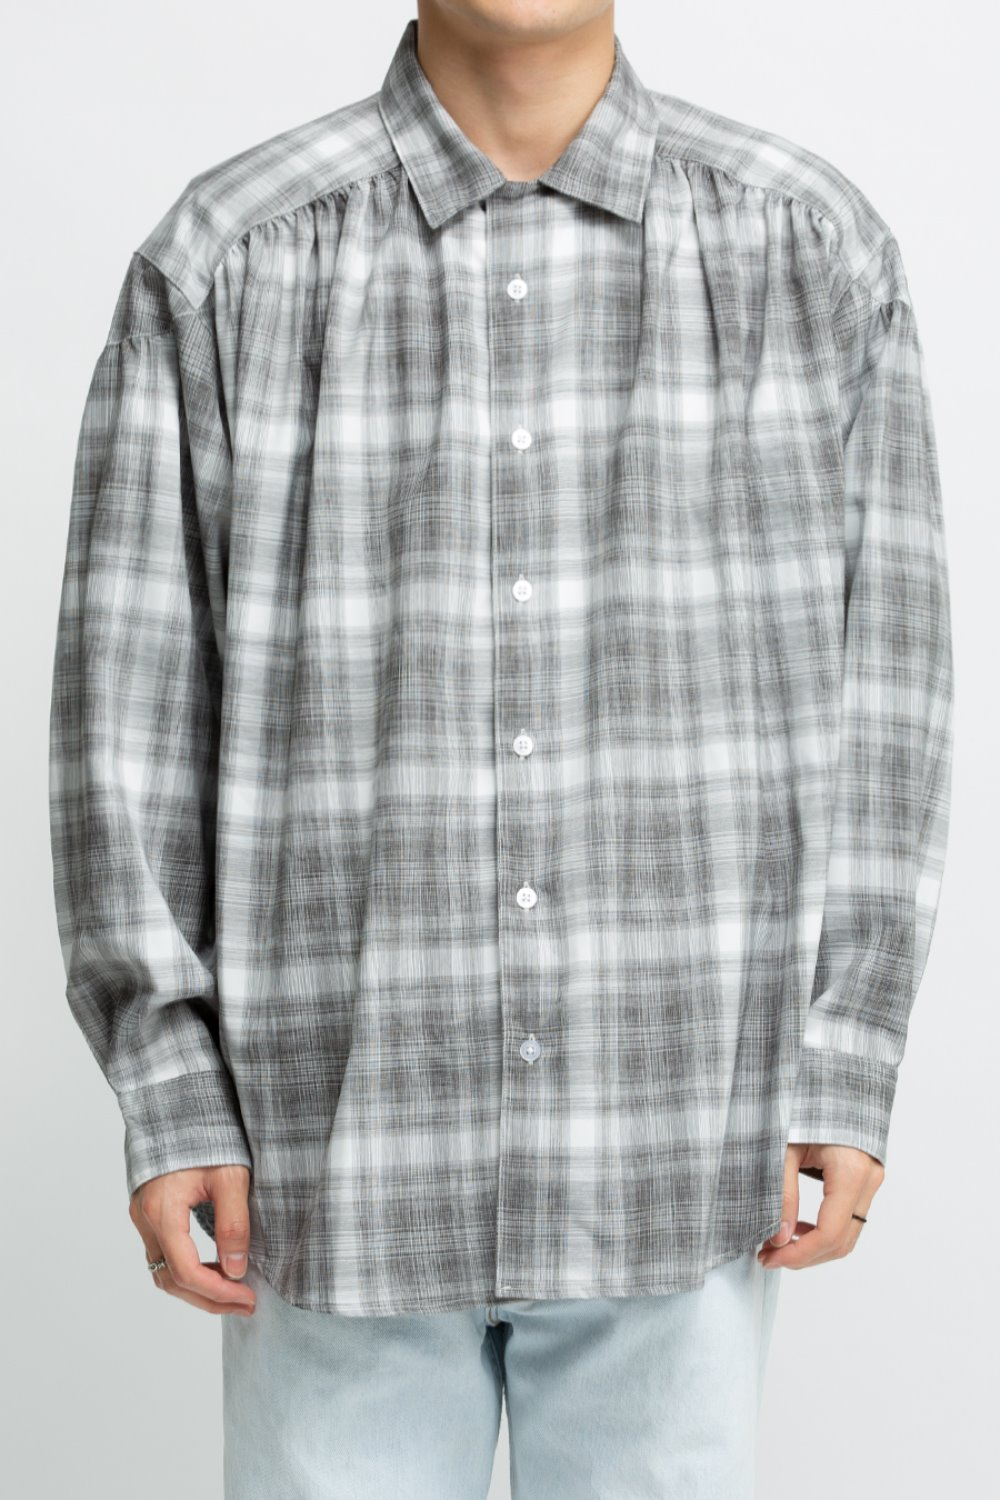 PAINTER SHIRT BLACK WHITE POLYESTER SHADOW PLAID